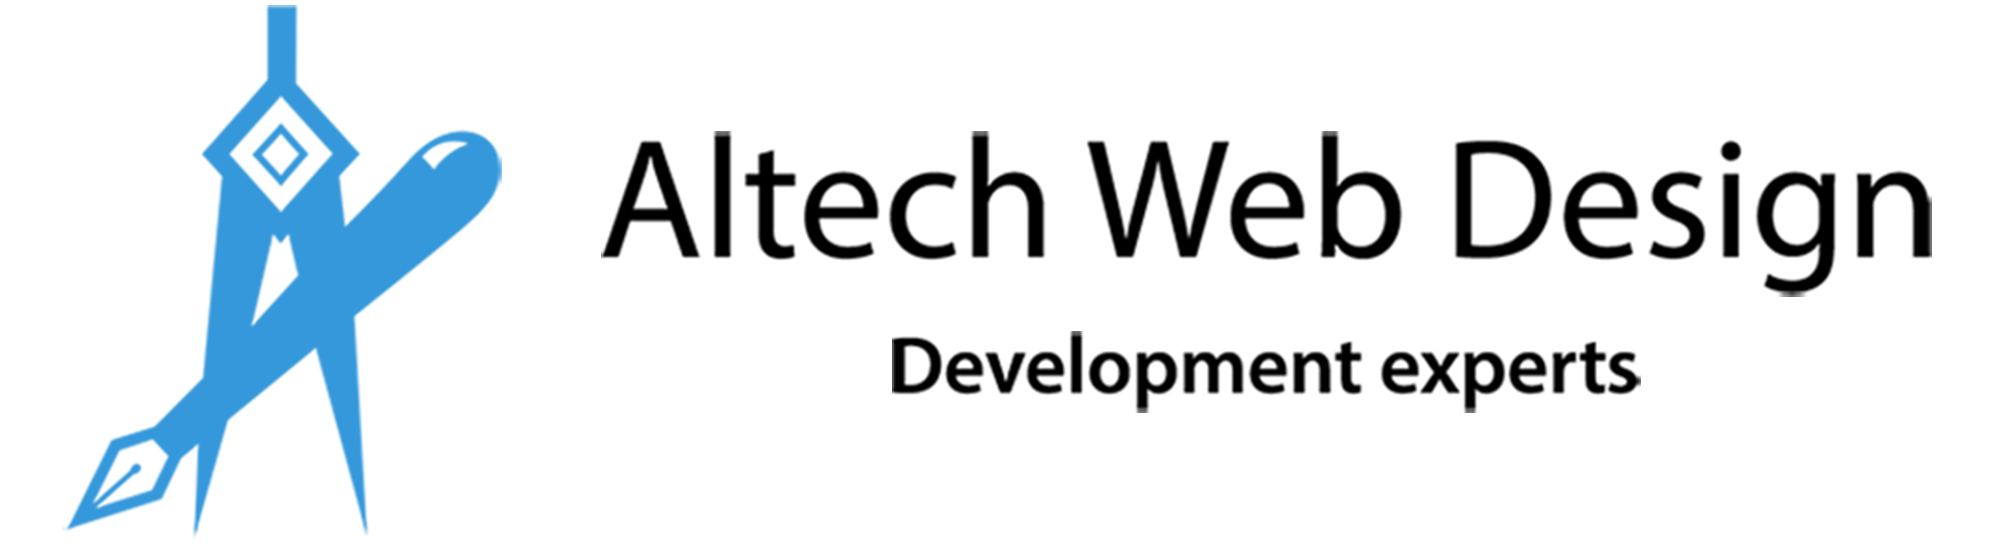 Altech Web Design Inc